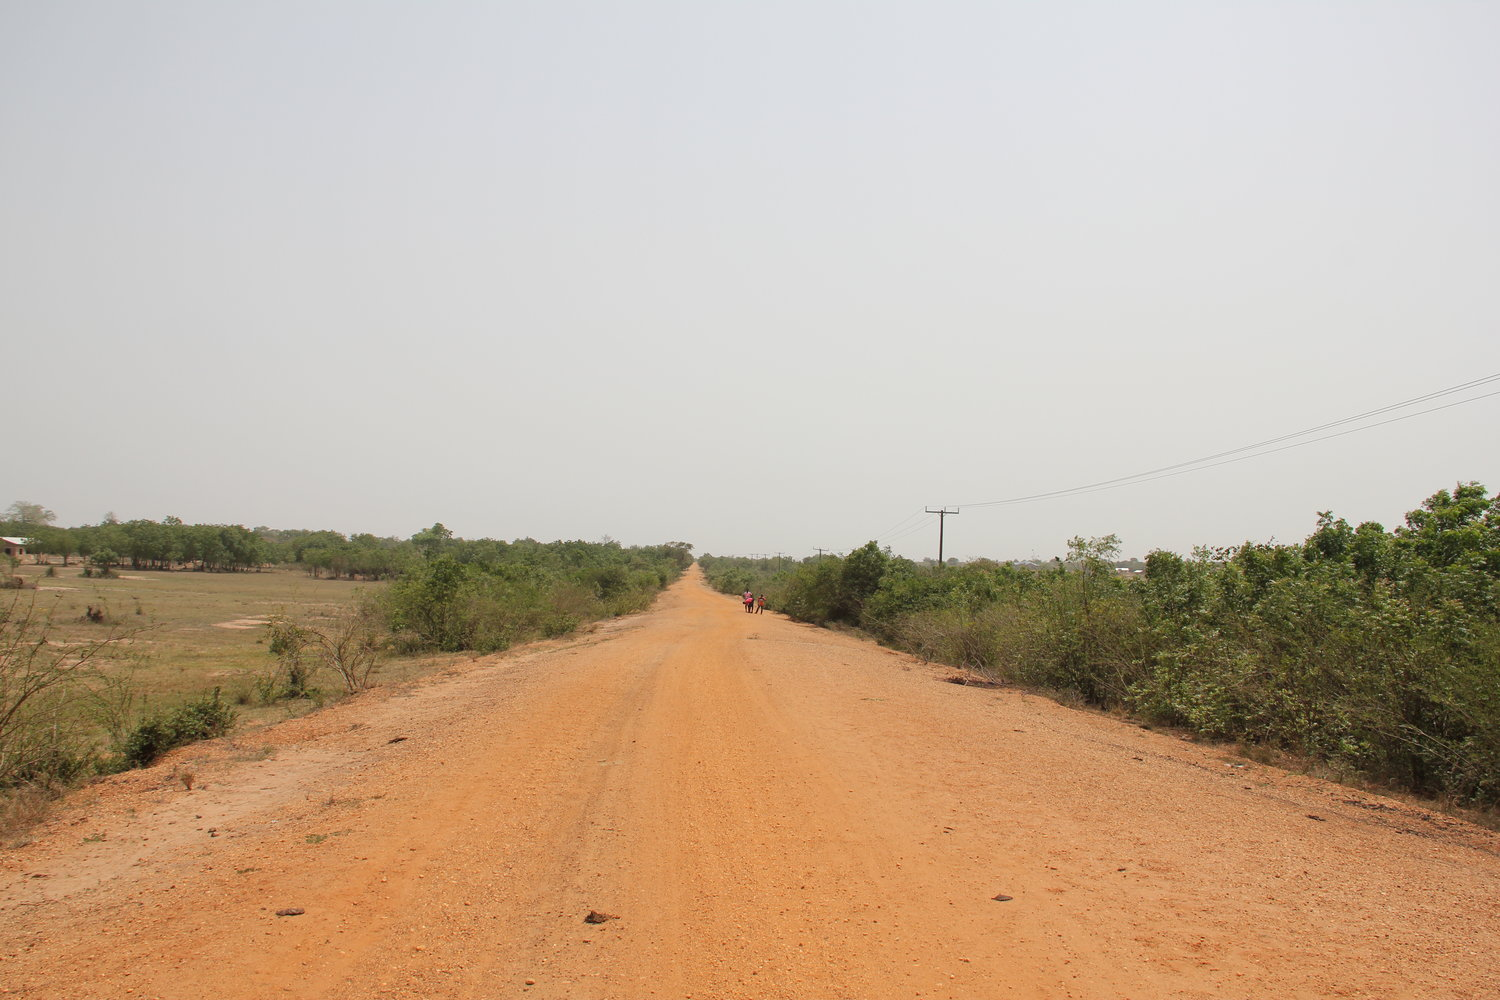 Road+leading+to+the+Site+of+the+Solar+Farm+Project.JPG